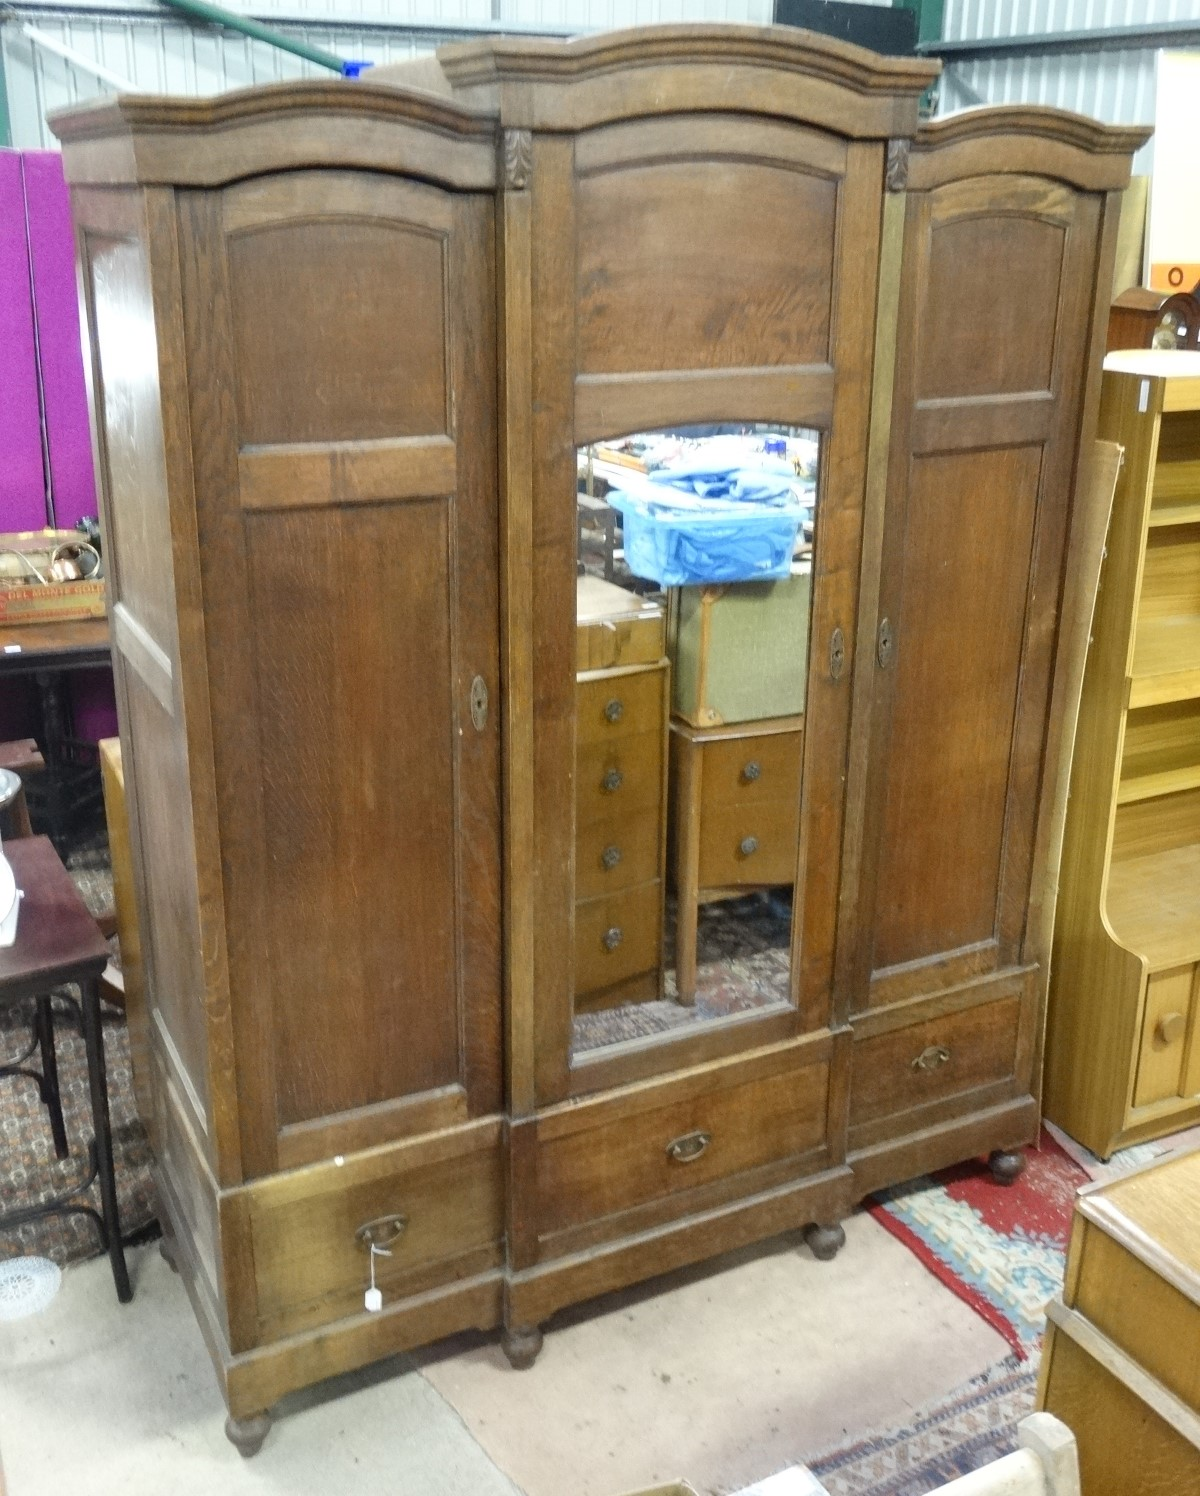 Lot 51 - A late 19th / early 20th C oak breakfront triple armoire/ bibliotech with a mirror central door and